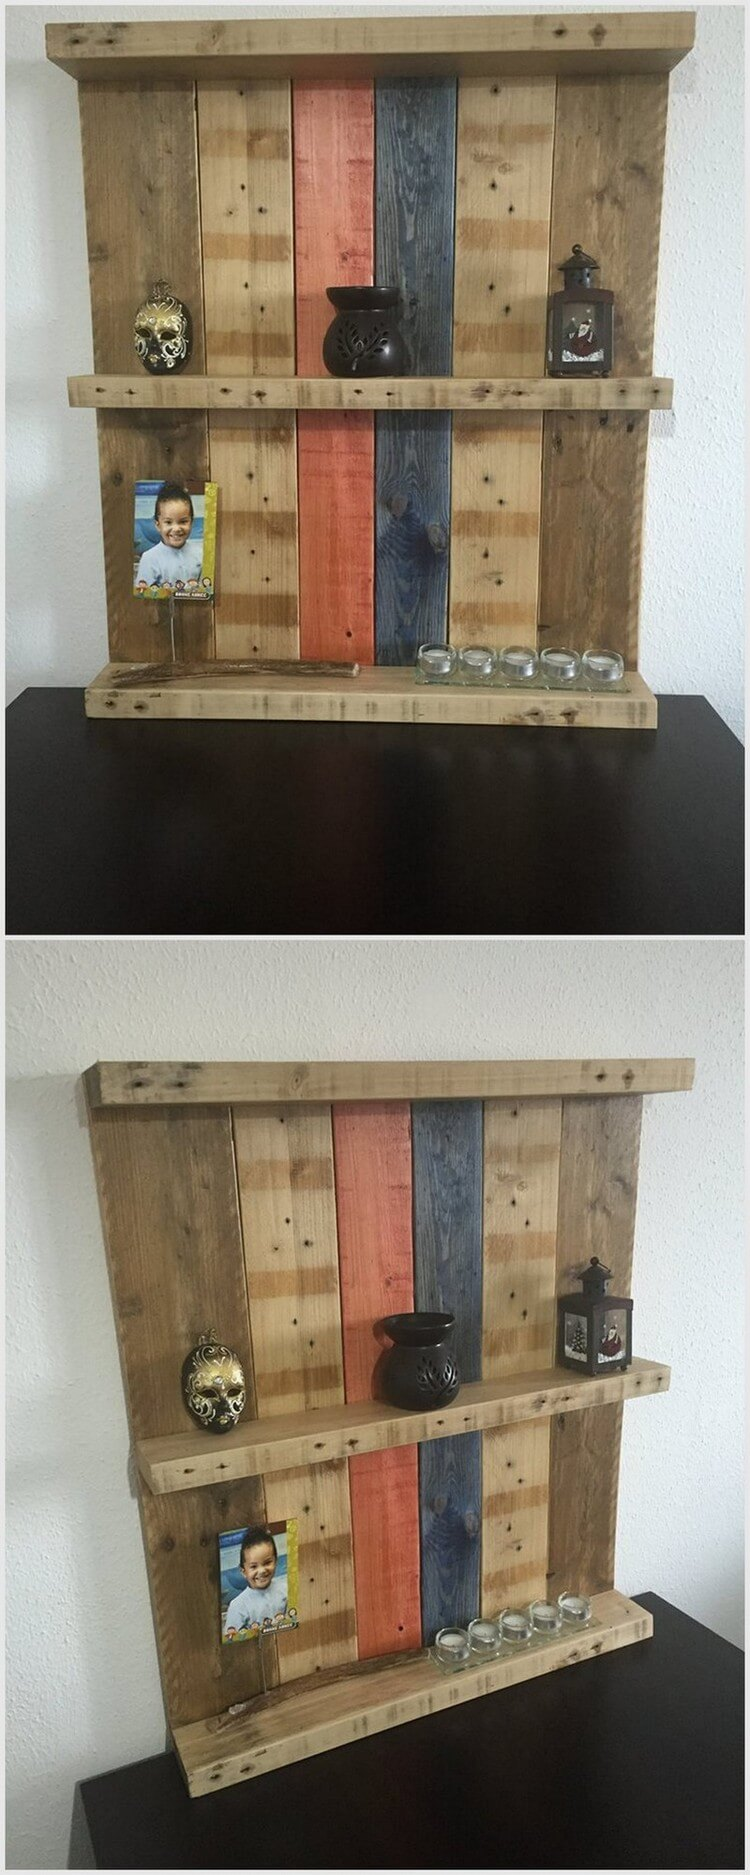 Imaginative Creations with Old Wood Pallets | Pallet Wood Projects